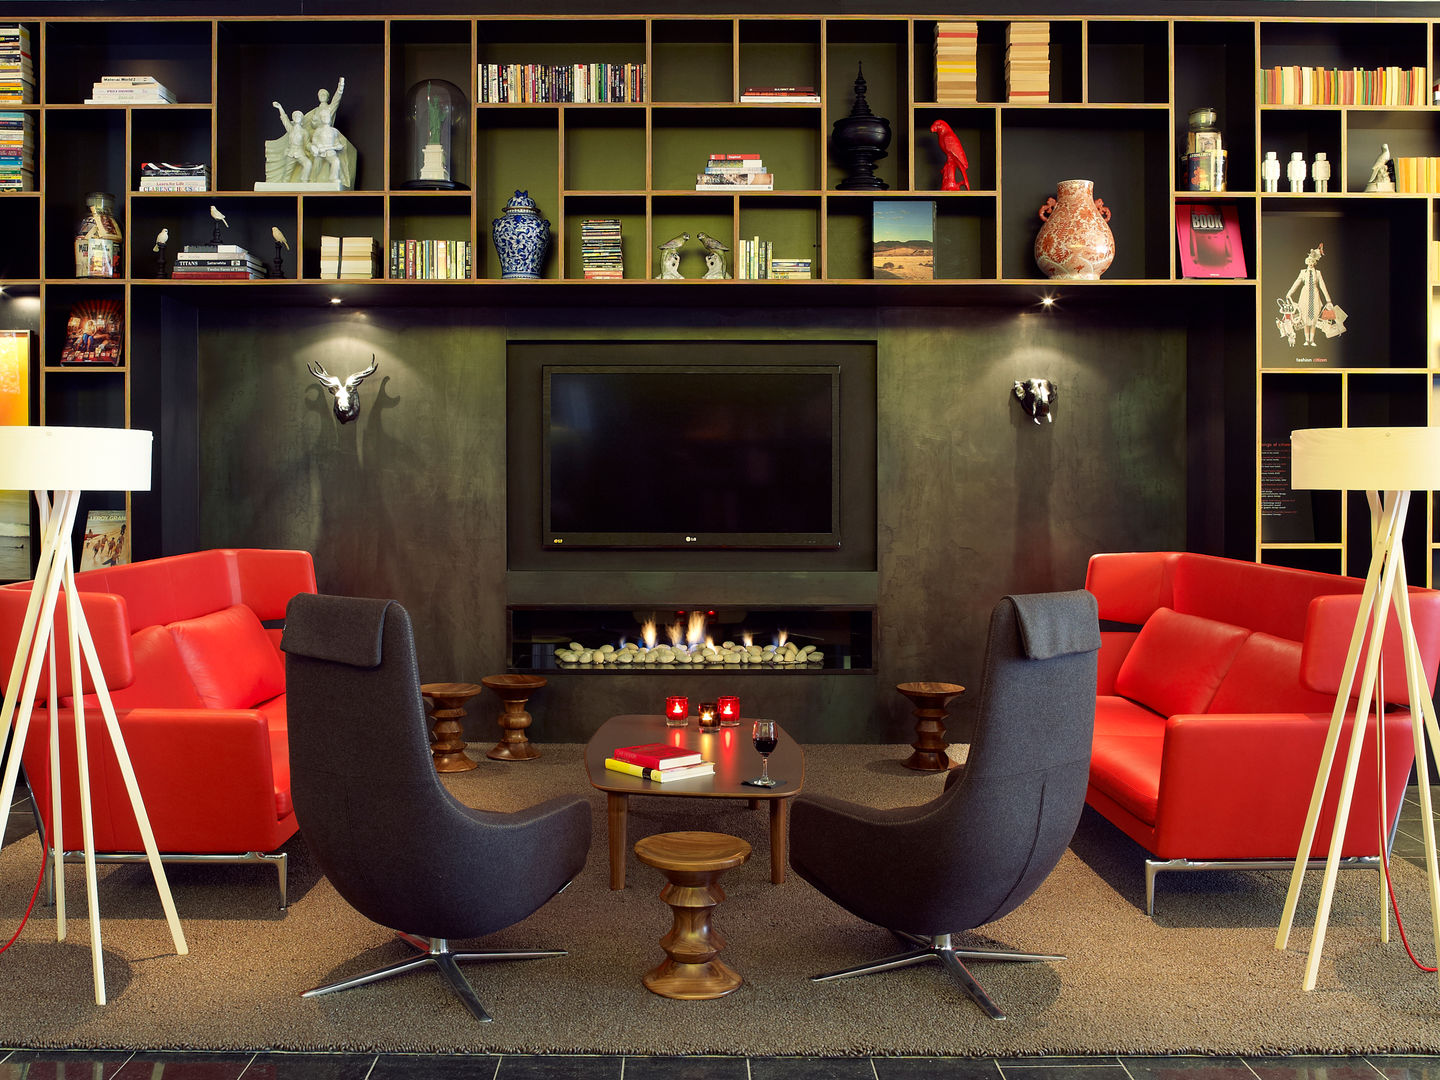 GroB The CitizenM Hotel In New York Is The Sixth Hotel Opened By The Group,  Whose Philosophy Is To Offer Its Guests Affordable Luxury. While The Rooms  Are Fitted ...